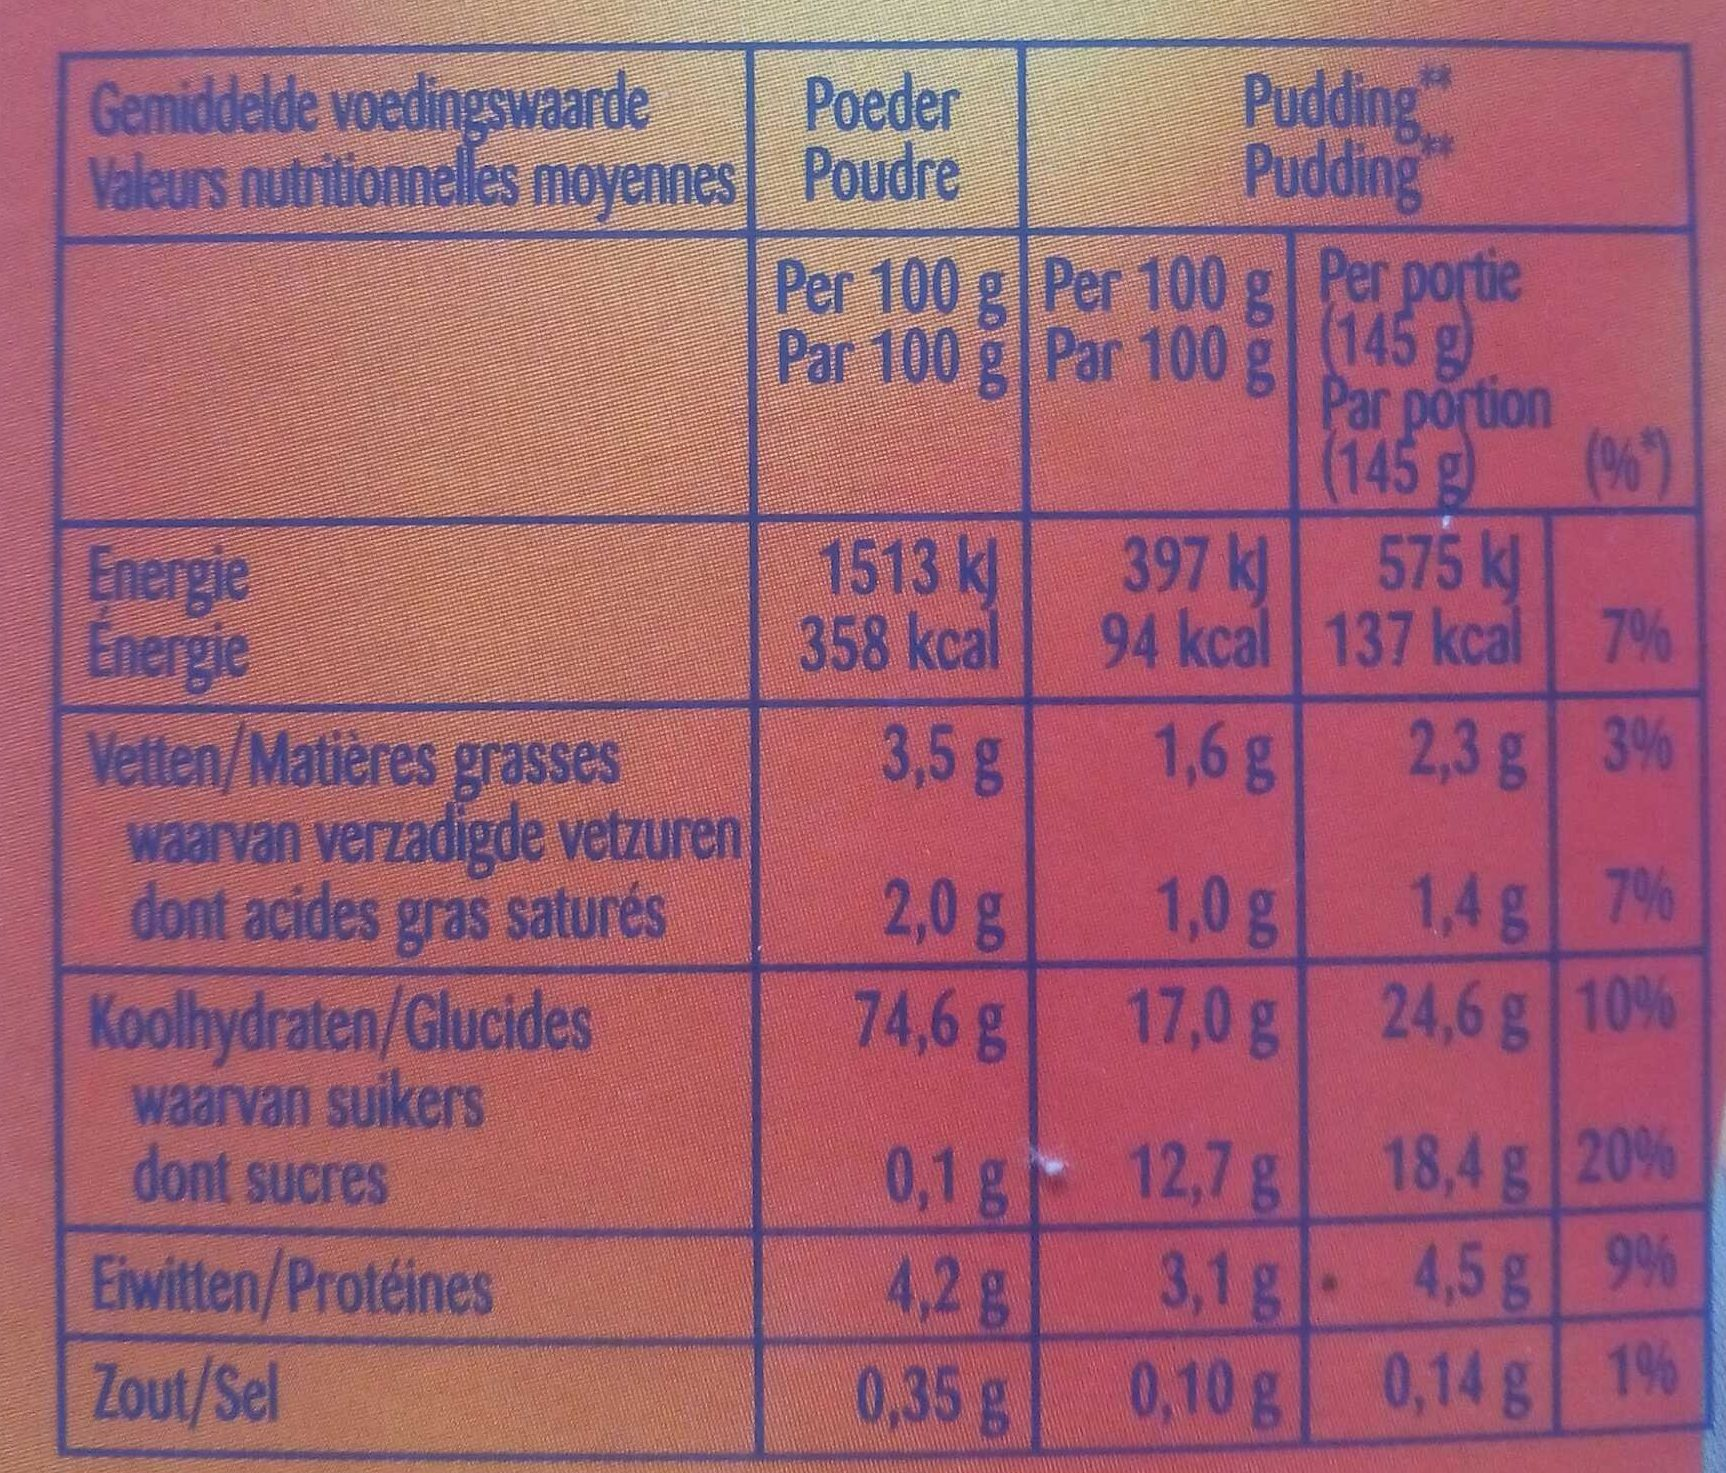 Pudding chocolat - Informations nutritionnelles